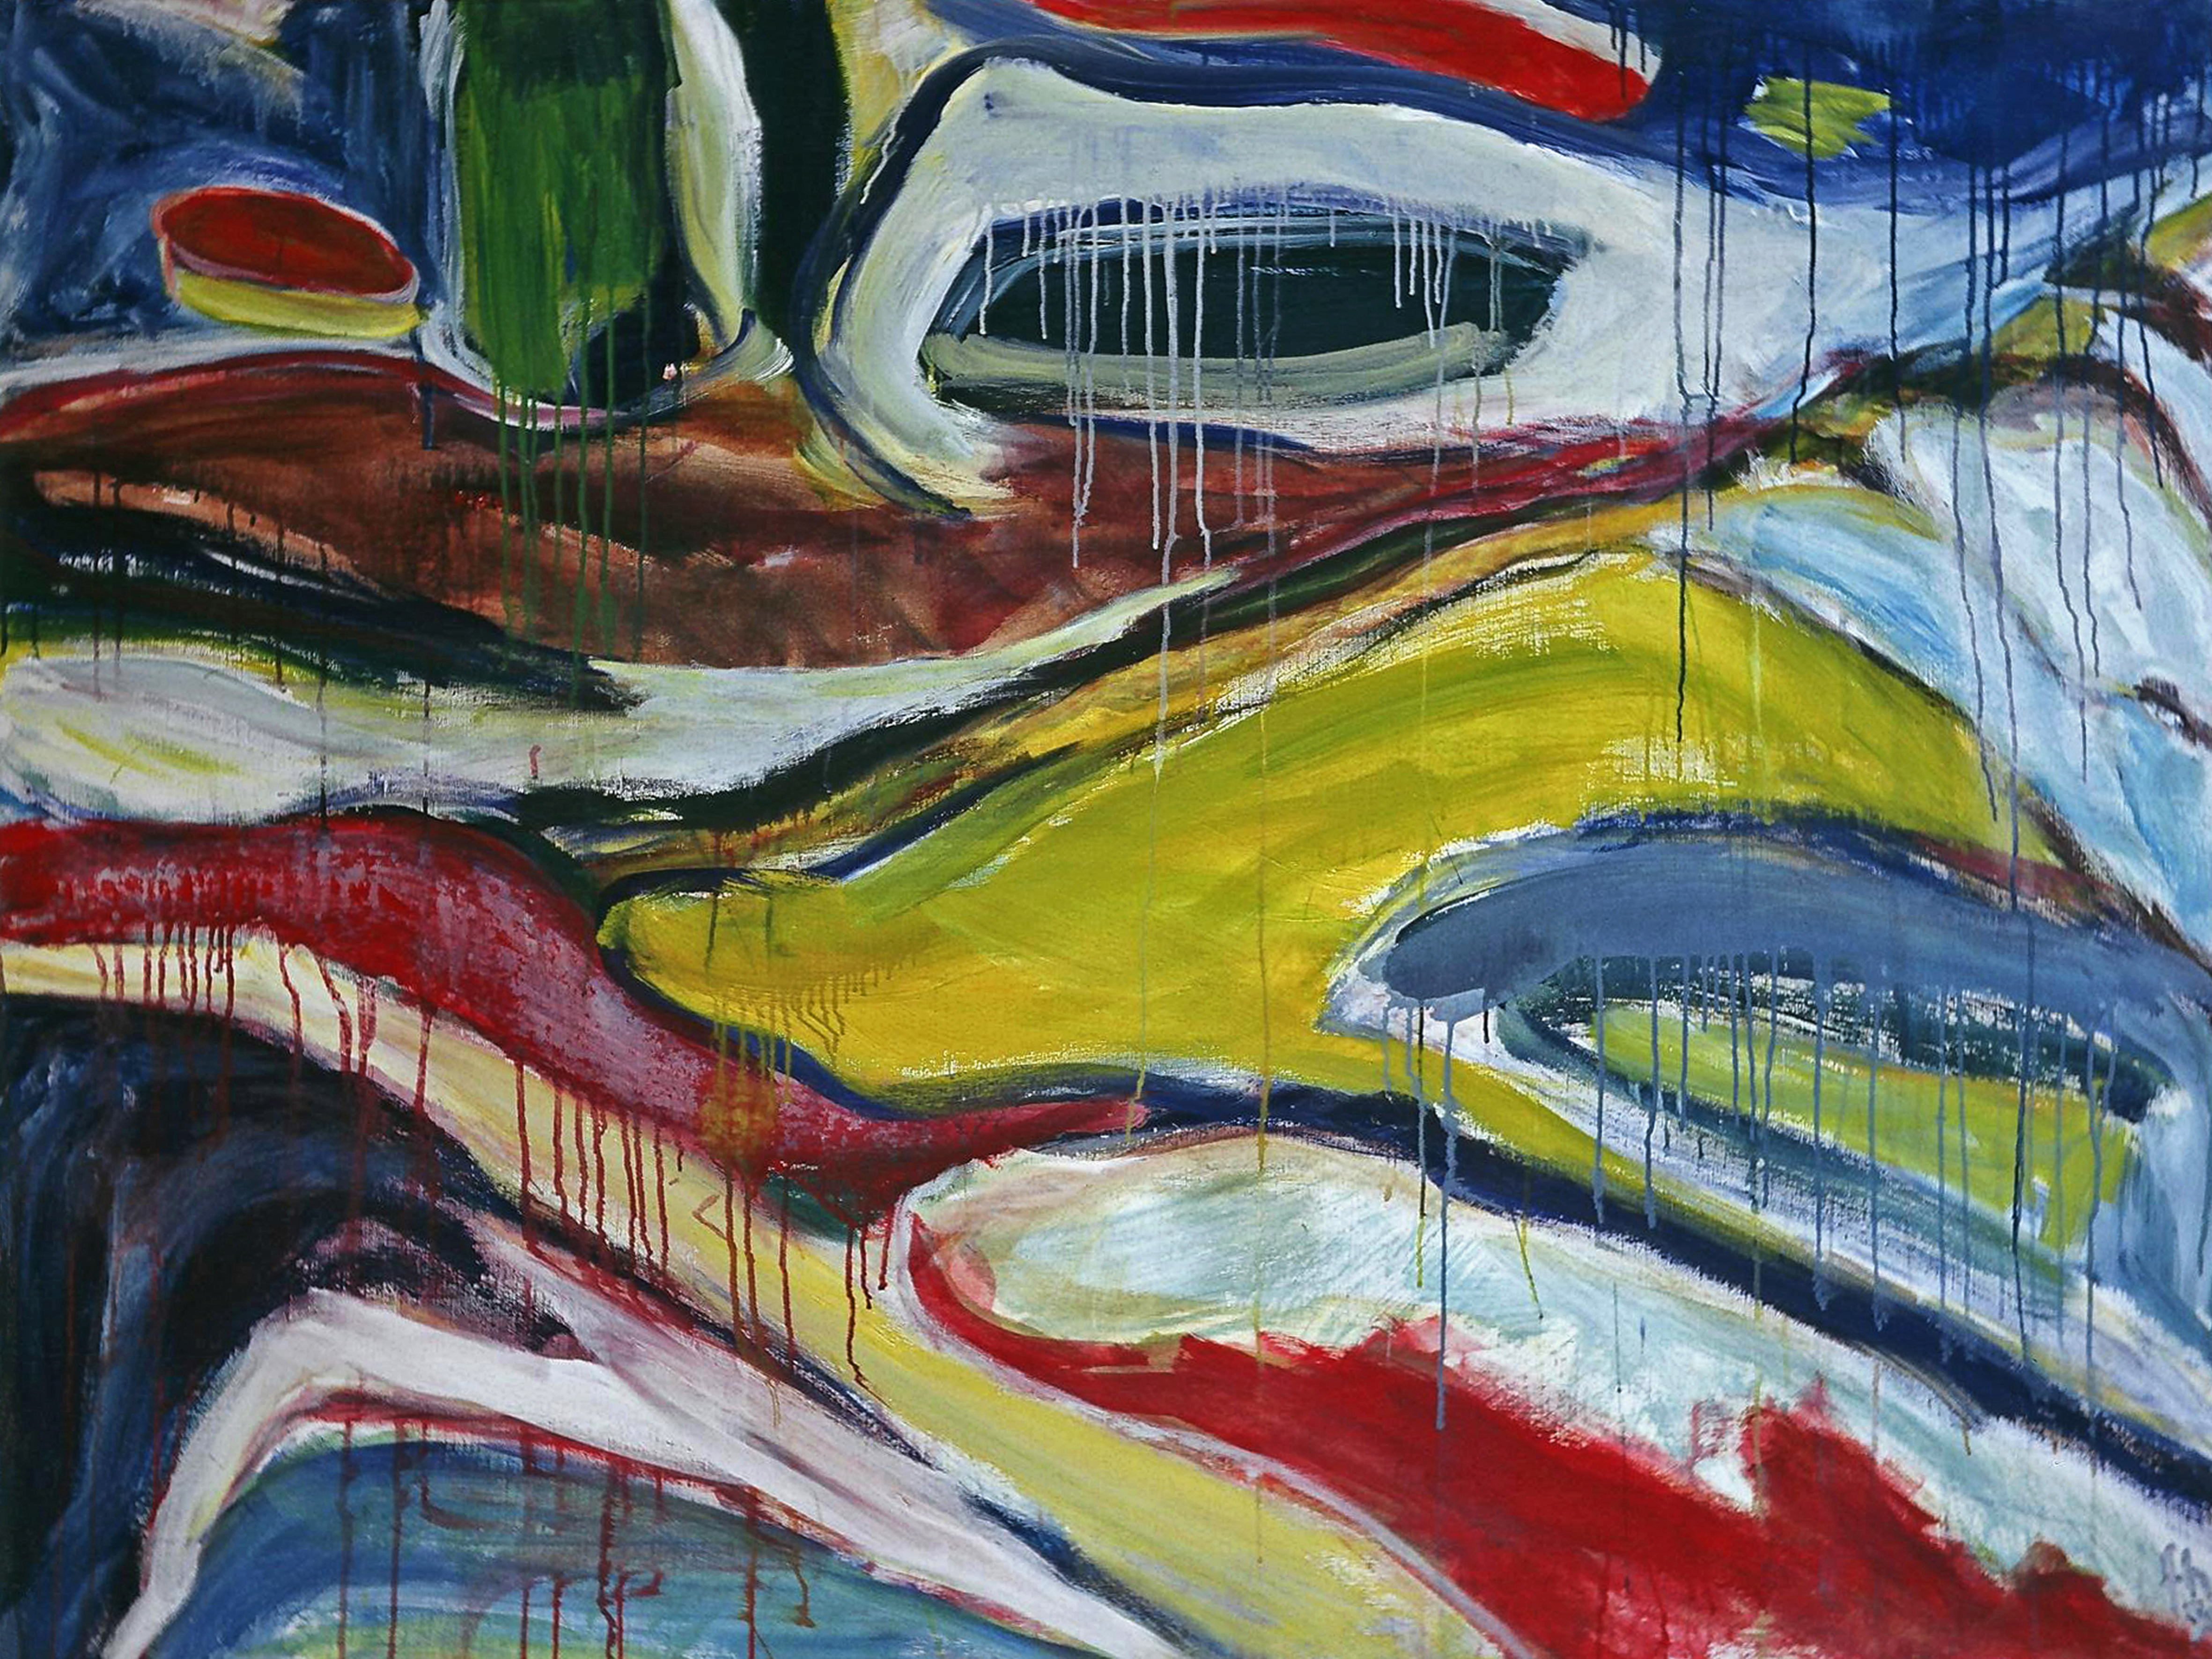 1990 - 'rugged dune landscape', large painting art in acrylic; a high resolution art image in free download to print, public domain / commons, cc-by - dutch painter-artist fons heijnsbroek photo